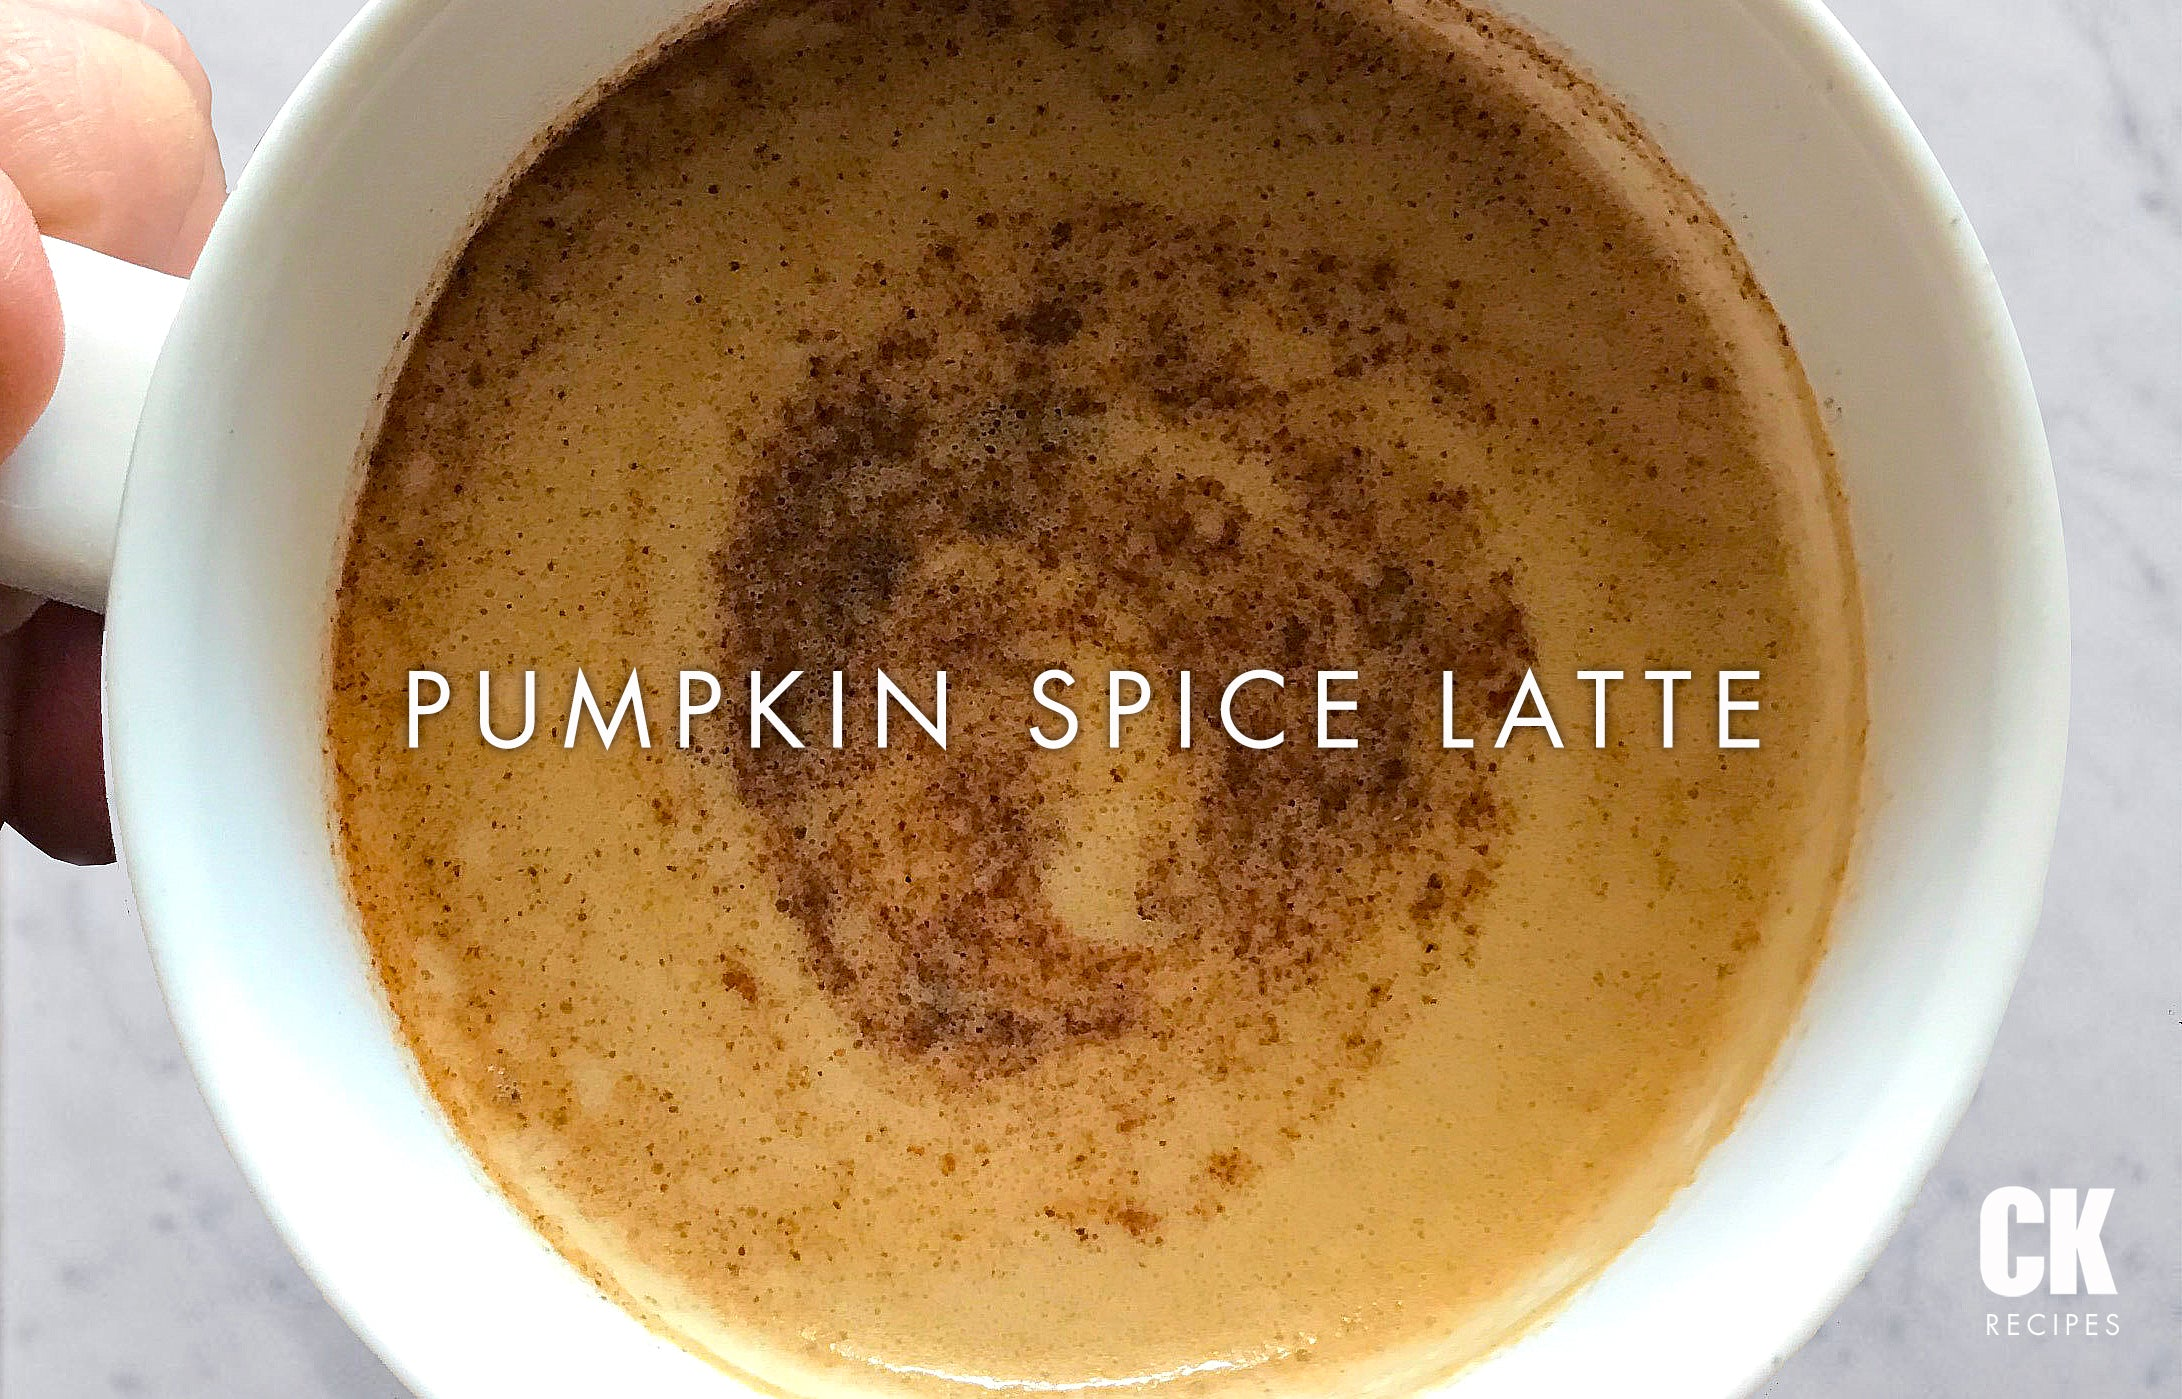 Pumpkin-Coffee_blog